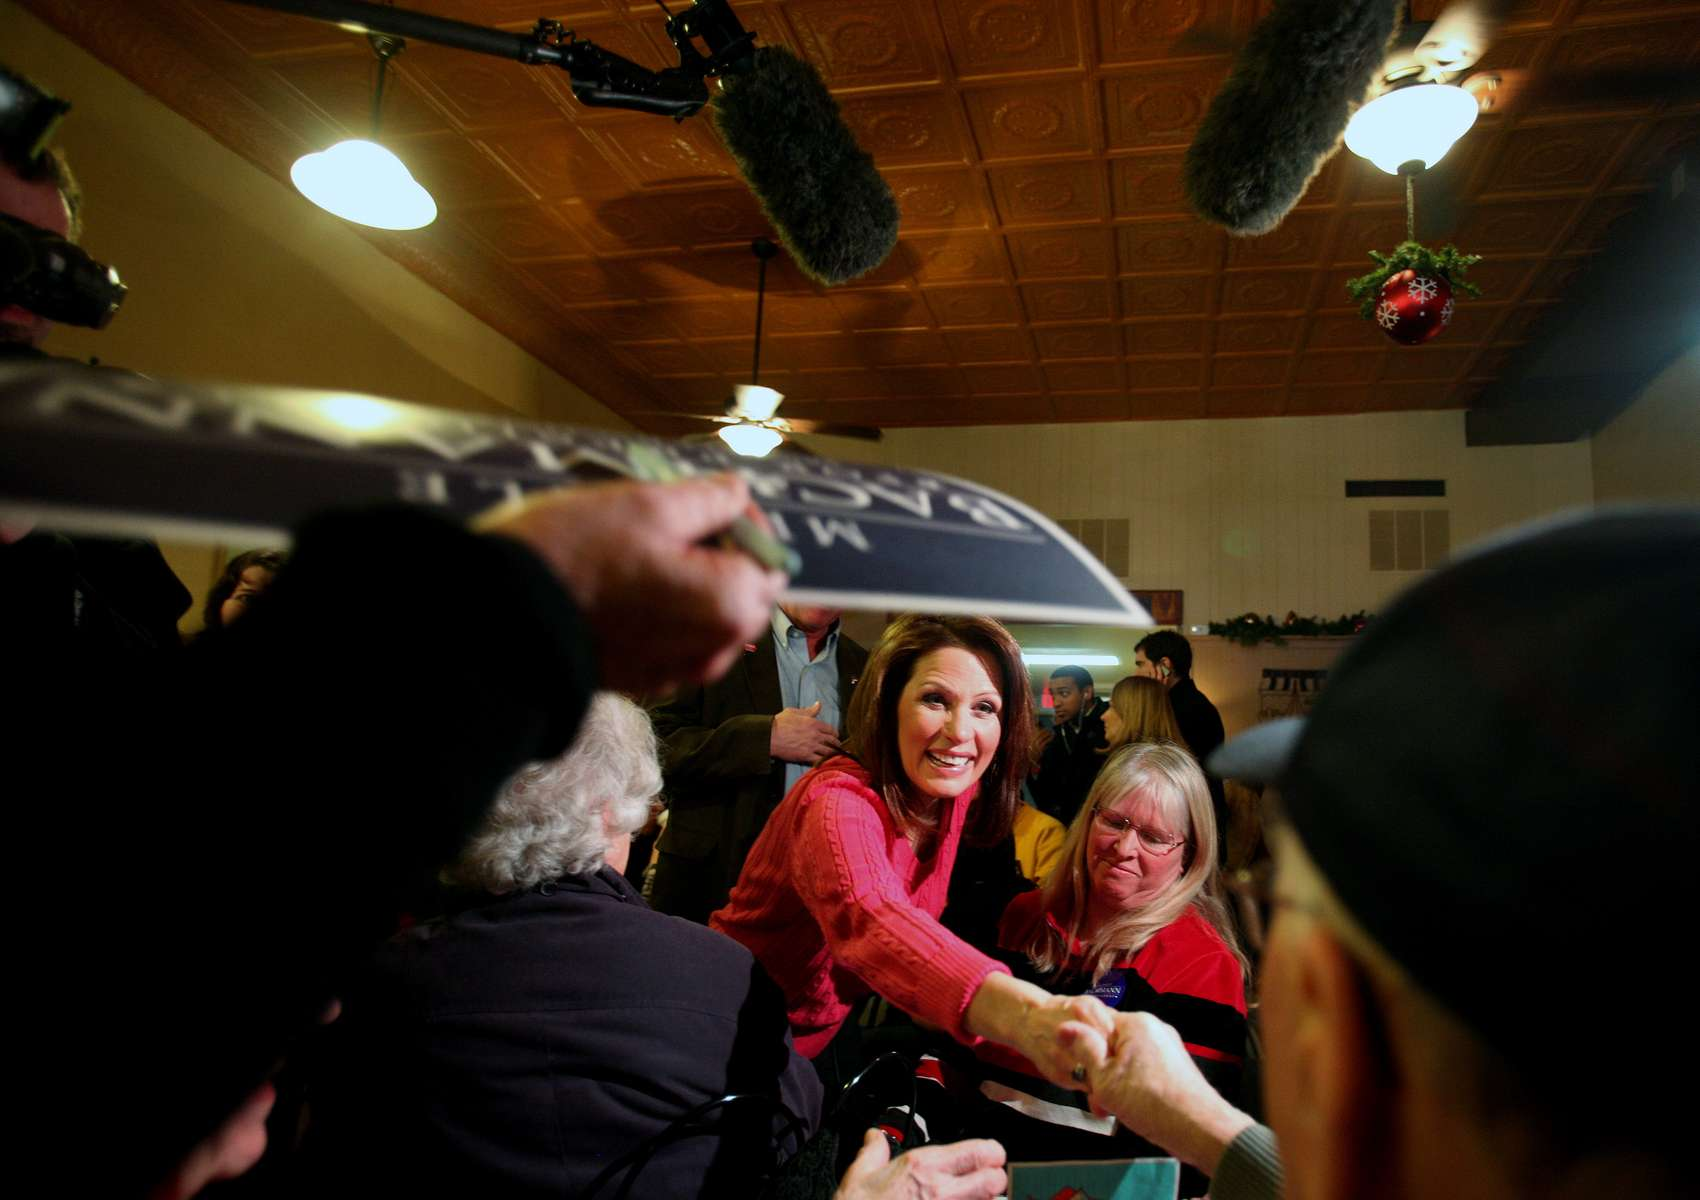 Republican presidential candidate Michele Bachmann greets supporters at Adams Street Espresso in Creston, Iowa.